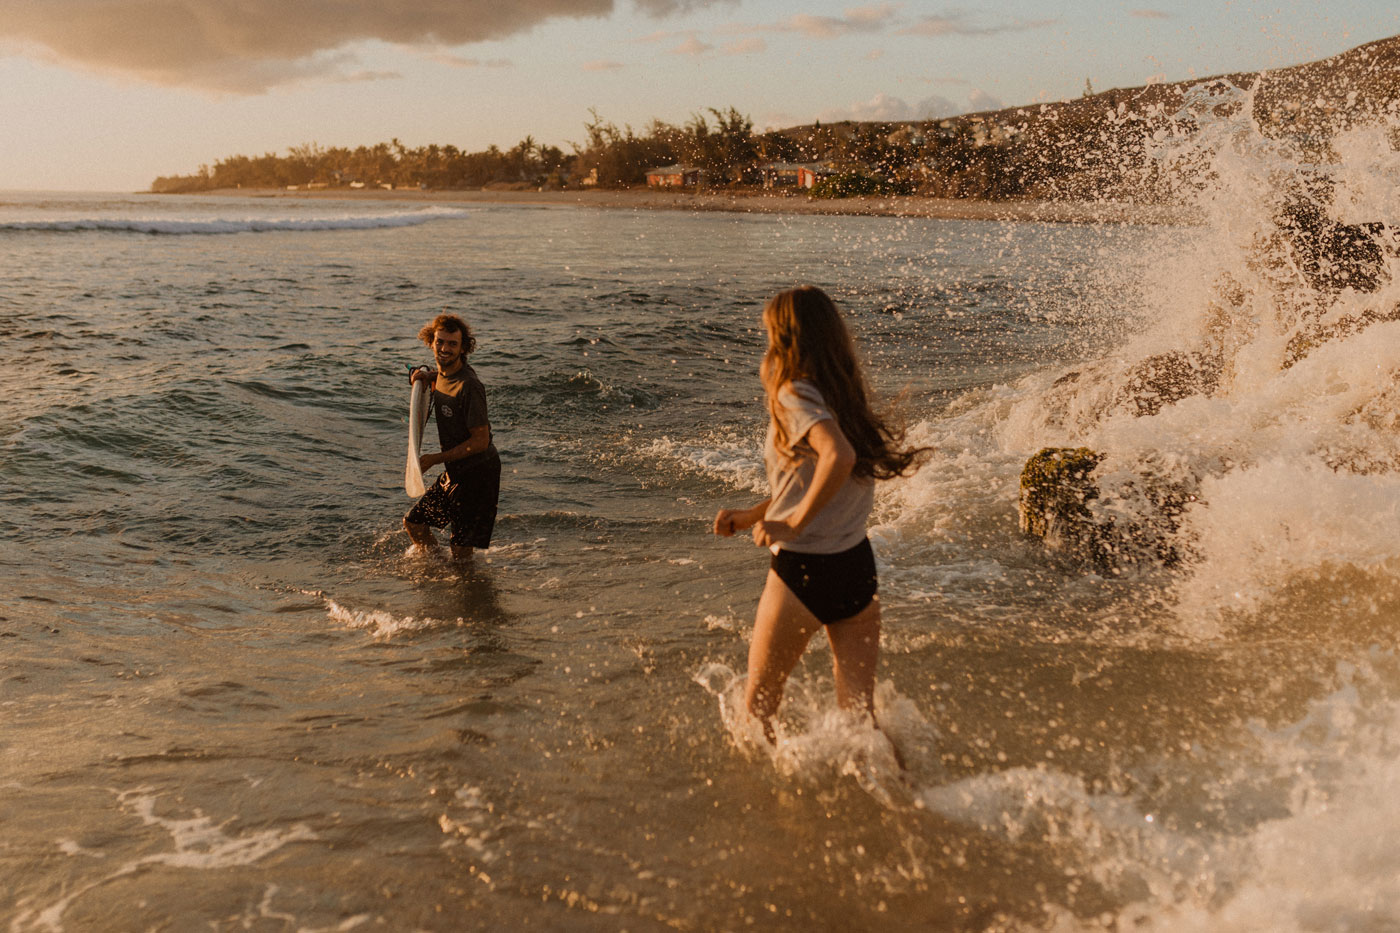 Surf lovers in Reunion Island